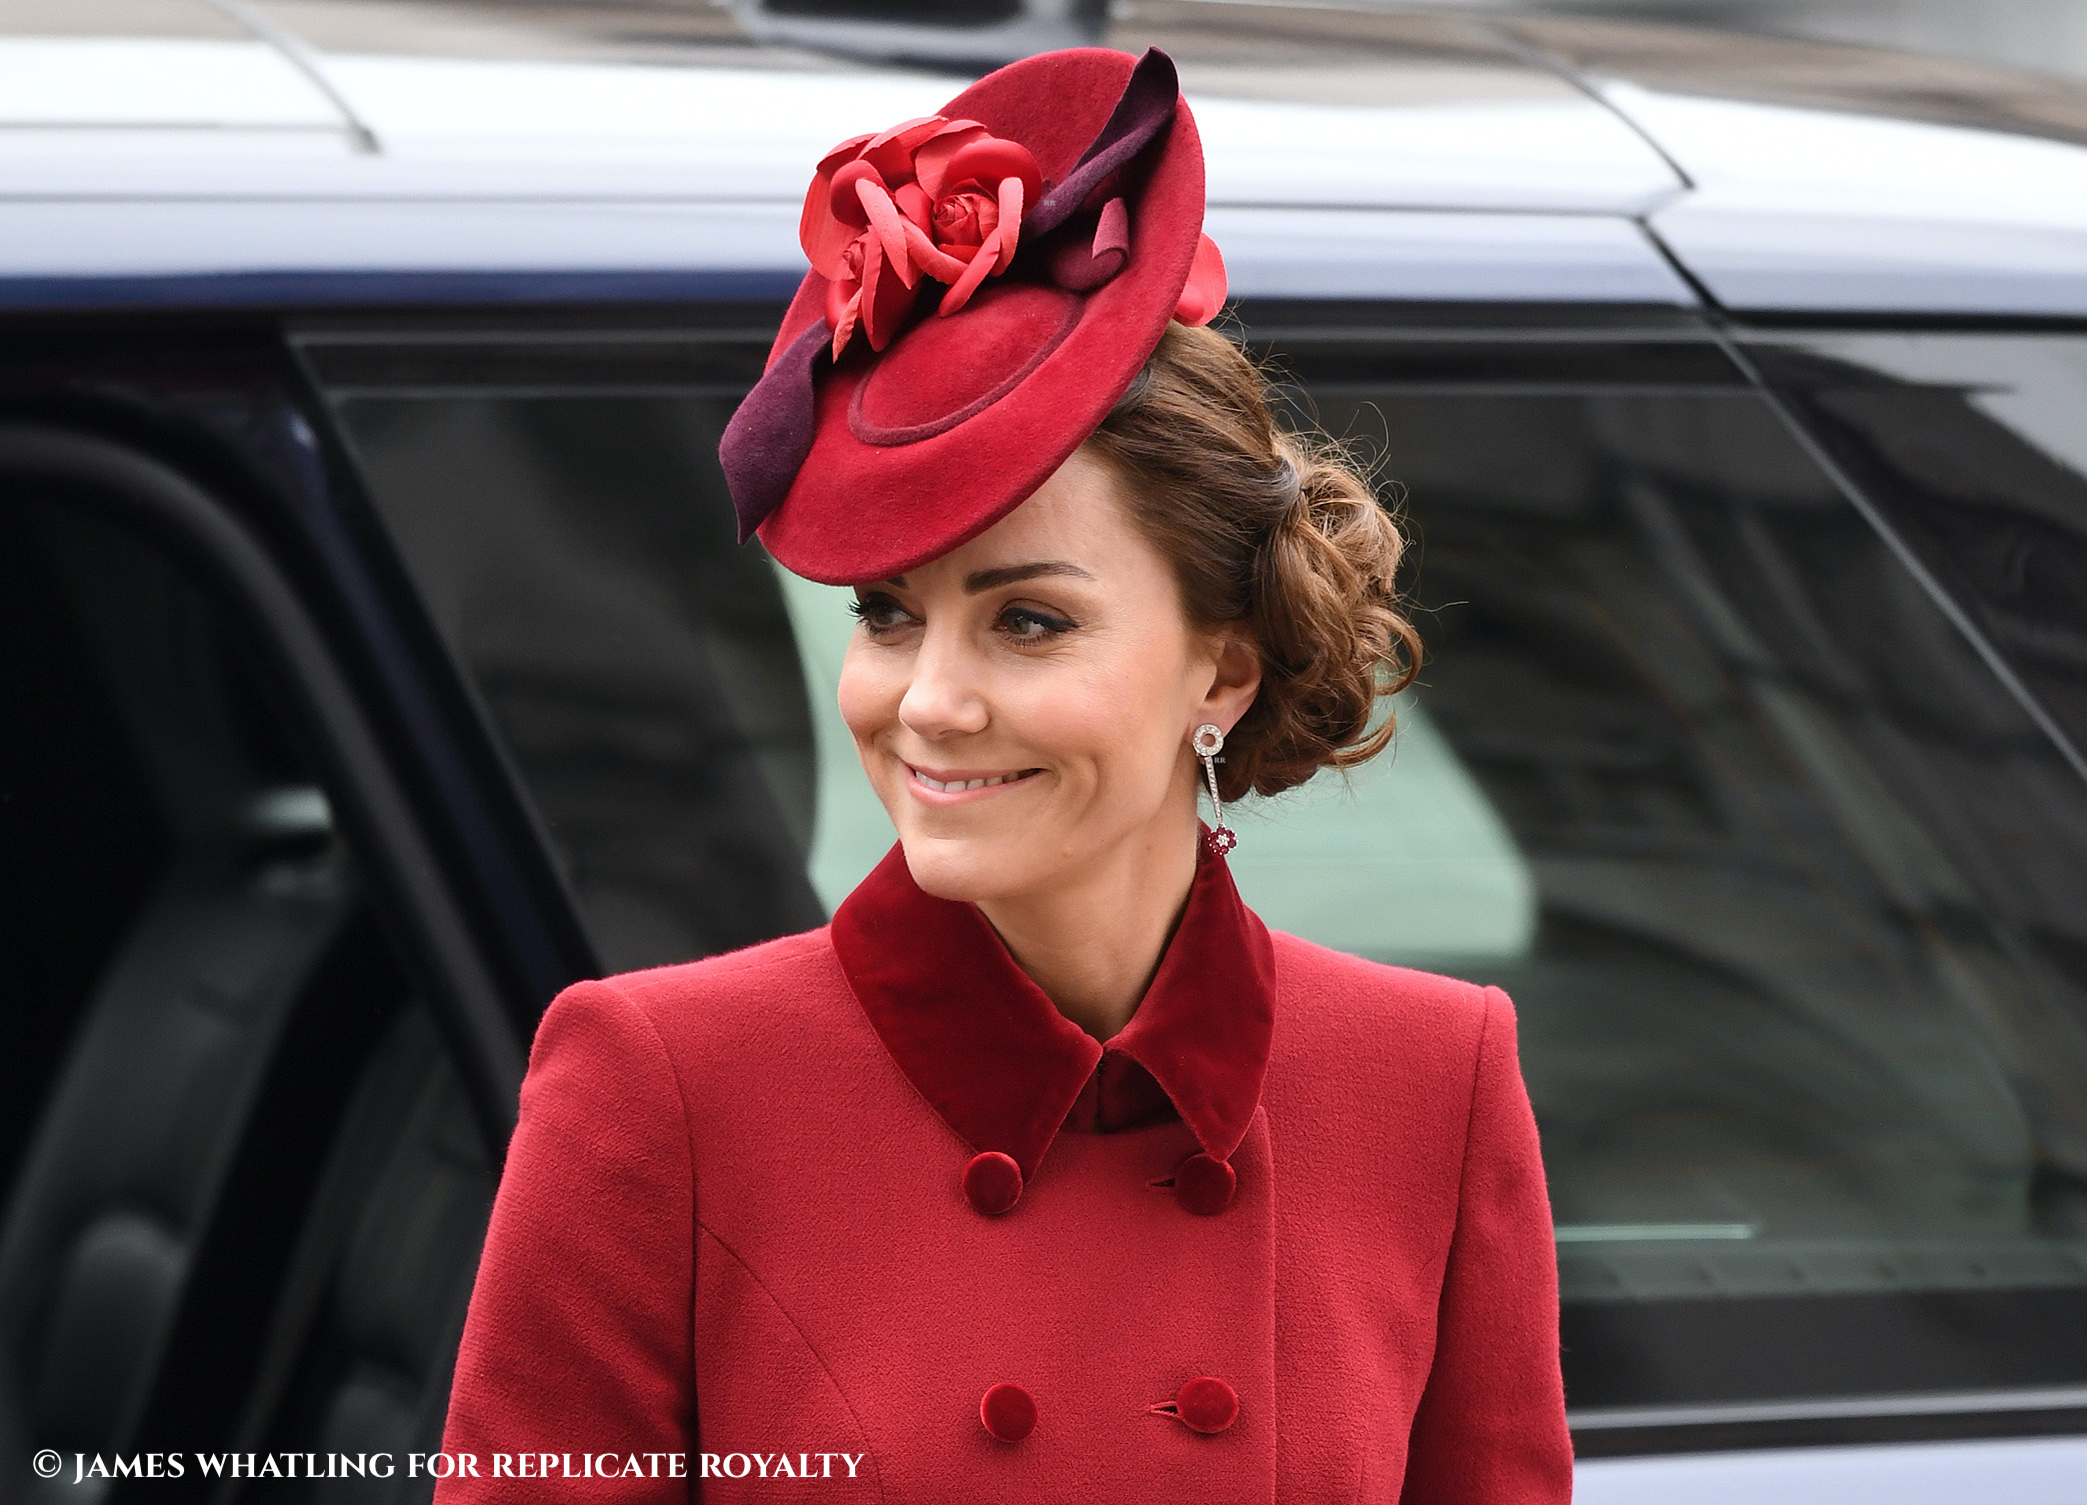 The Duchess of Cambridge wears a Sally Ann Provan hat to attend the annual Commonwealth Day Service